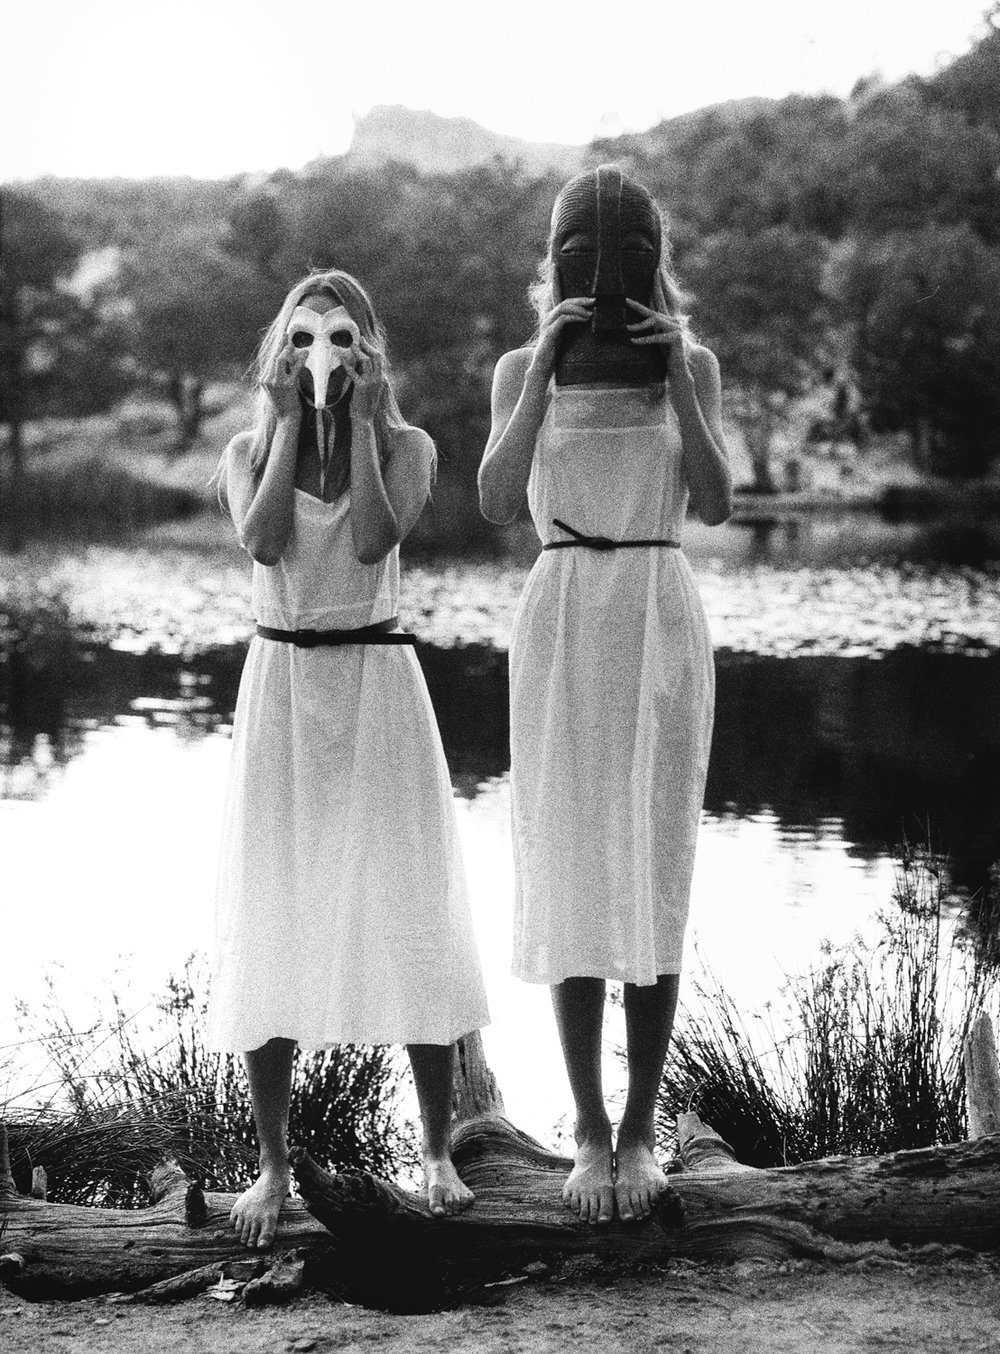 10_Kailyn_and_morgan_rose_canyon_lake_Tucson_az_pentax_67_Ilford_delta_3200_film_masks_Copyright_Taylor_Noel_Photography.jpg